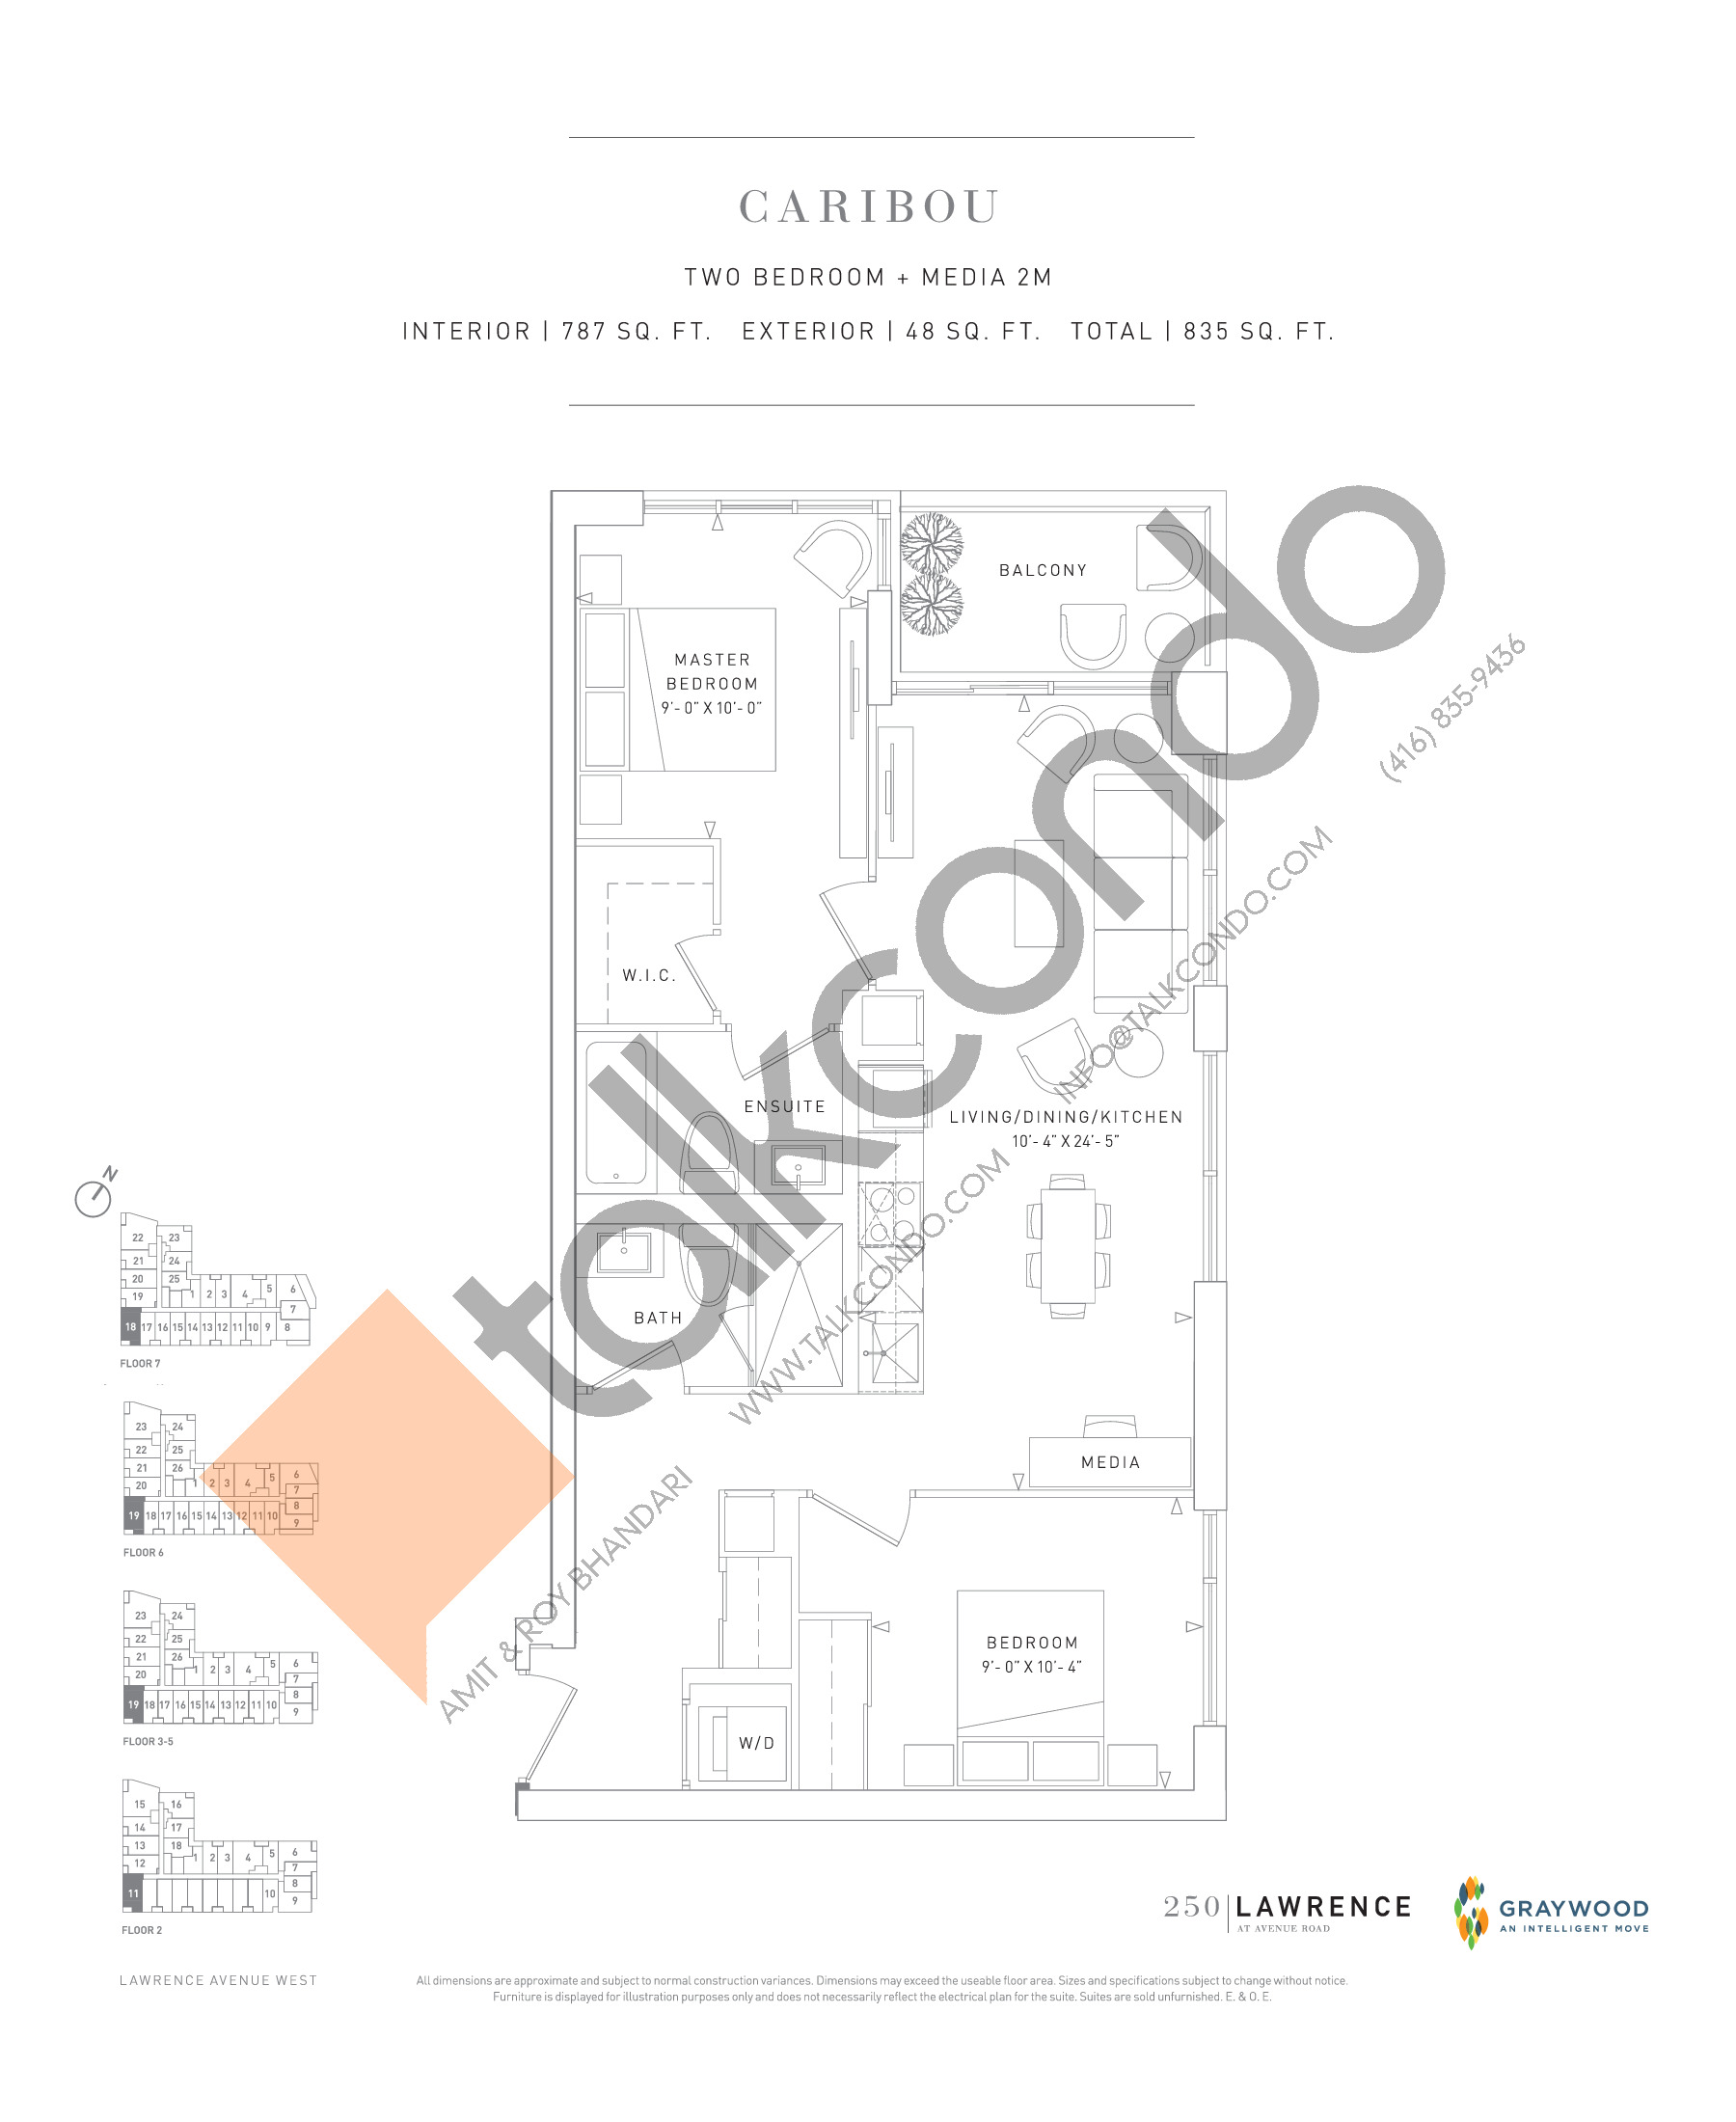 Caribou Floor Plan at 250 Lawrence Avenue West Condos - 787 sq.ft